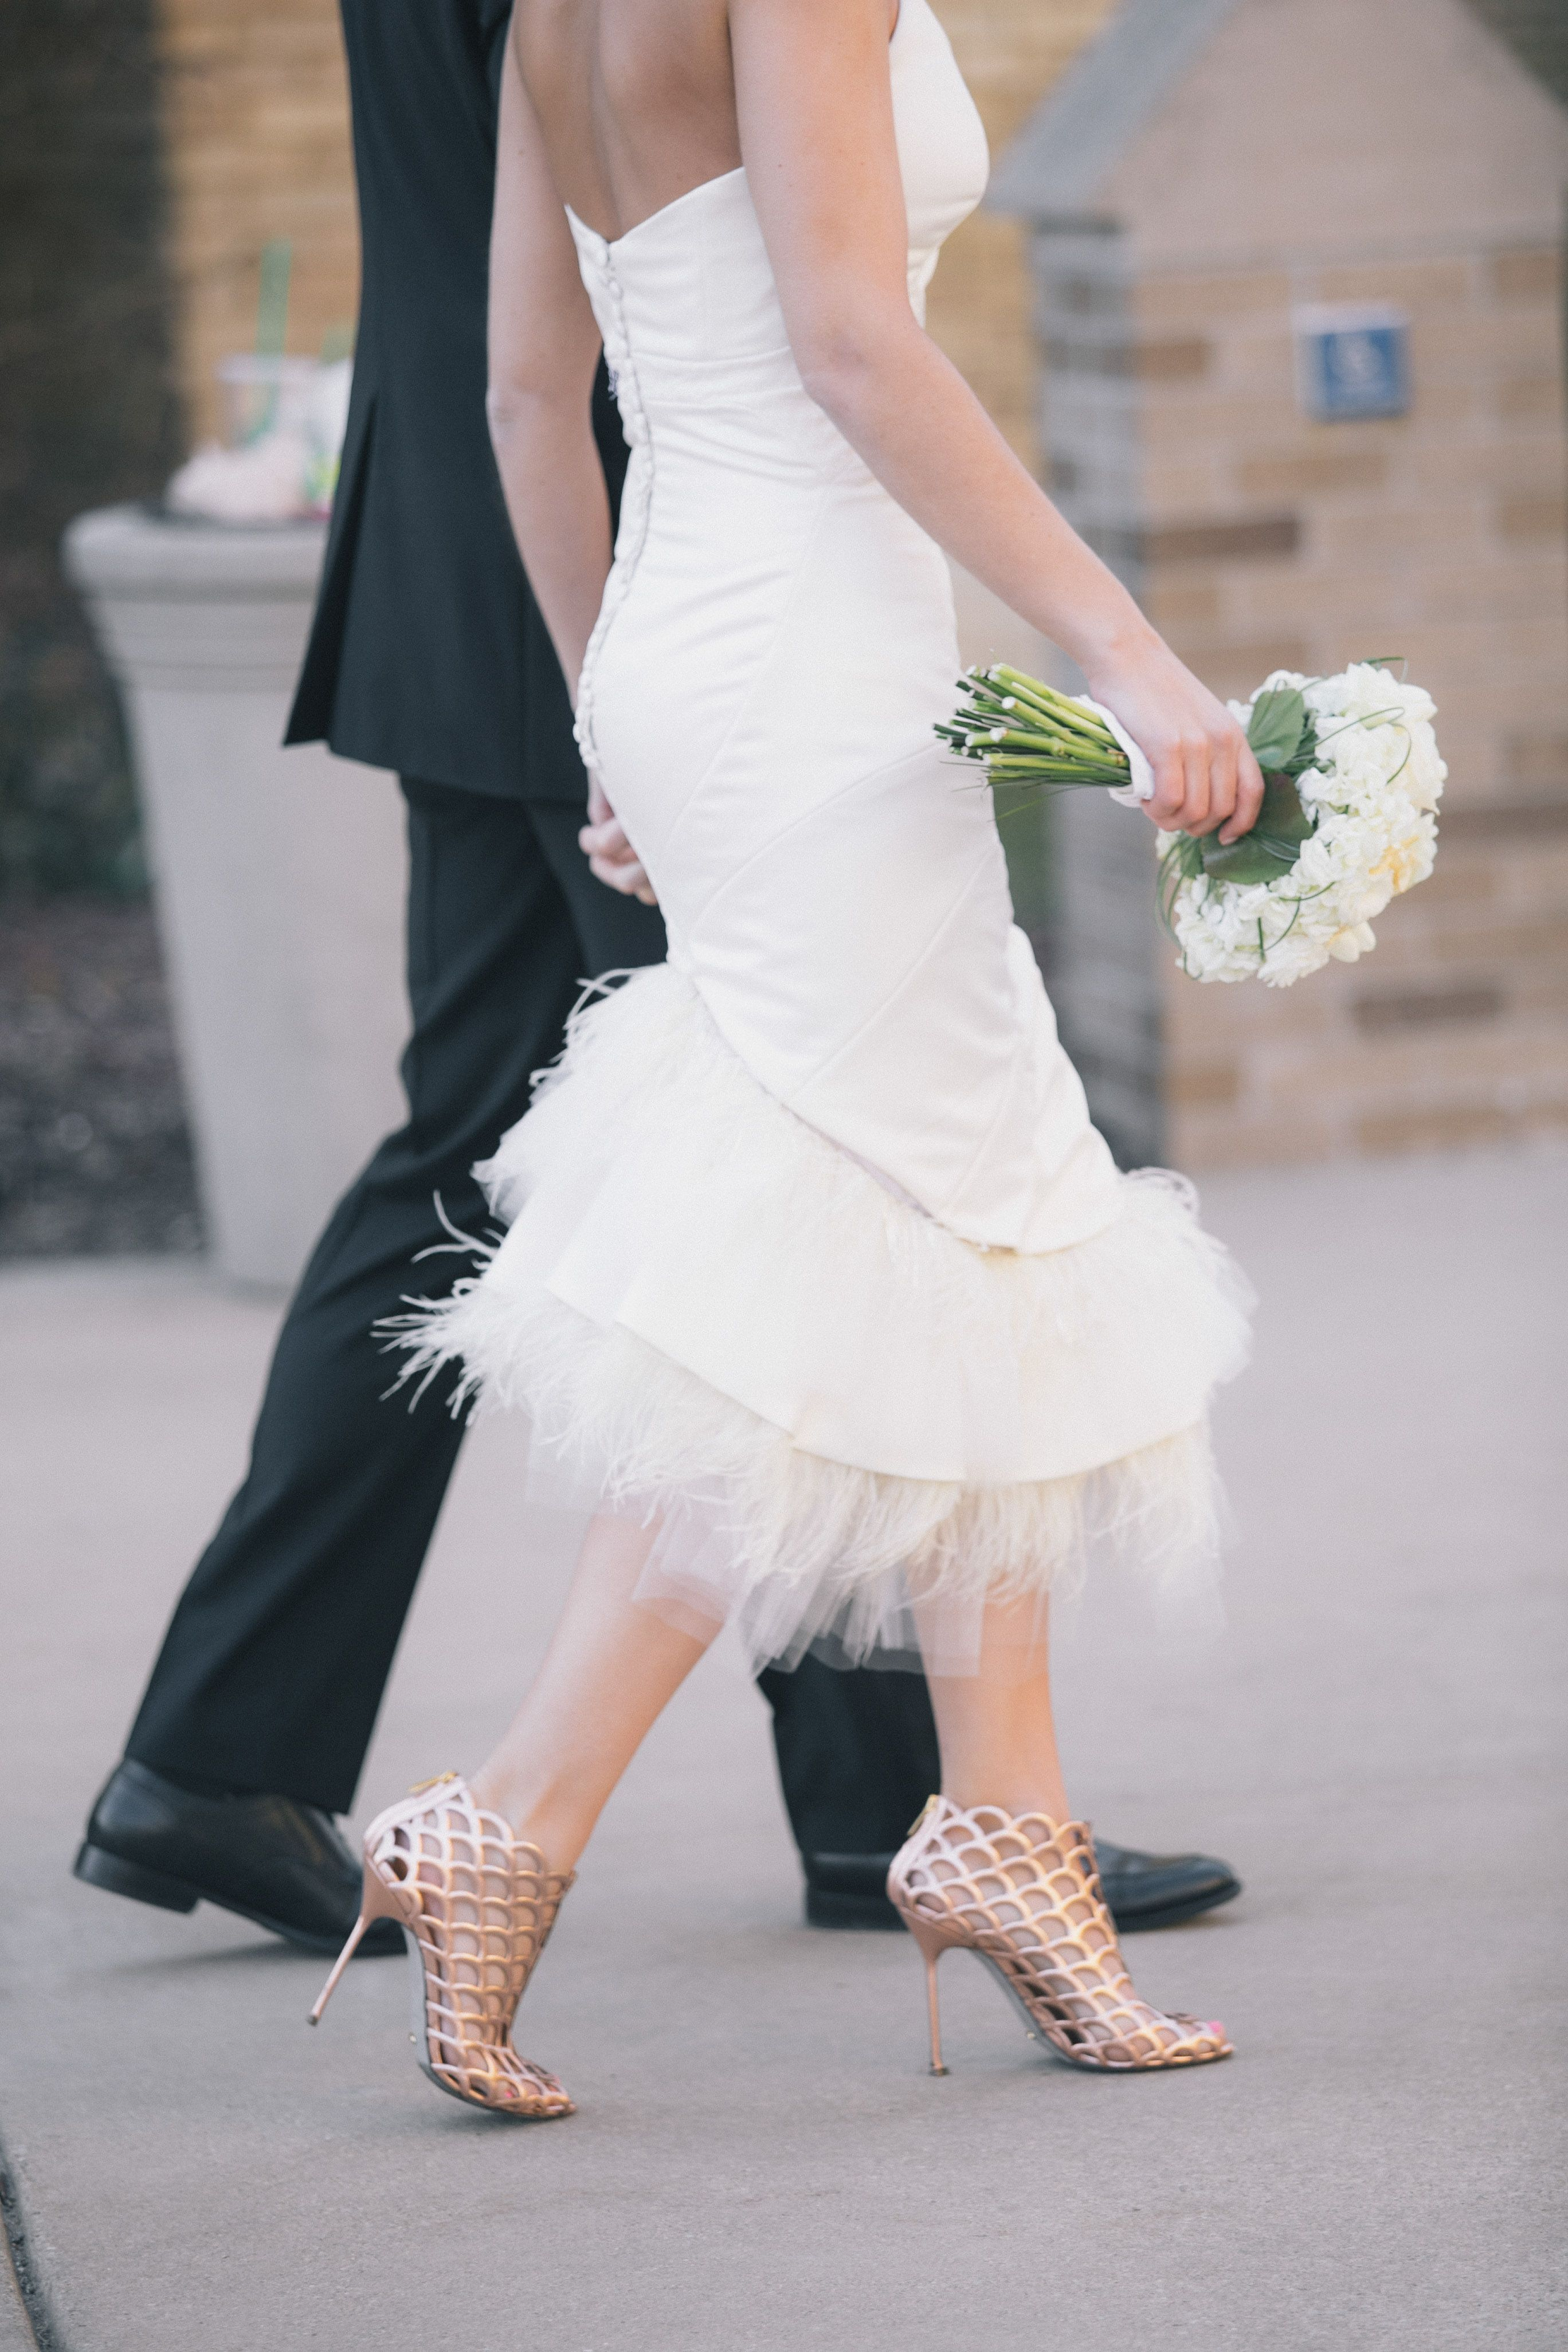 Fabulous short wedding dress and shoes university of notre dame